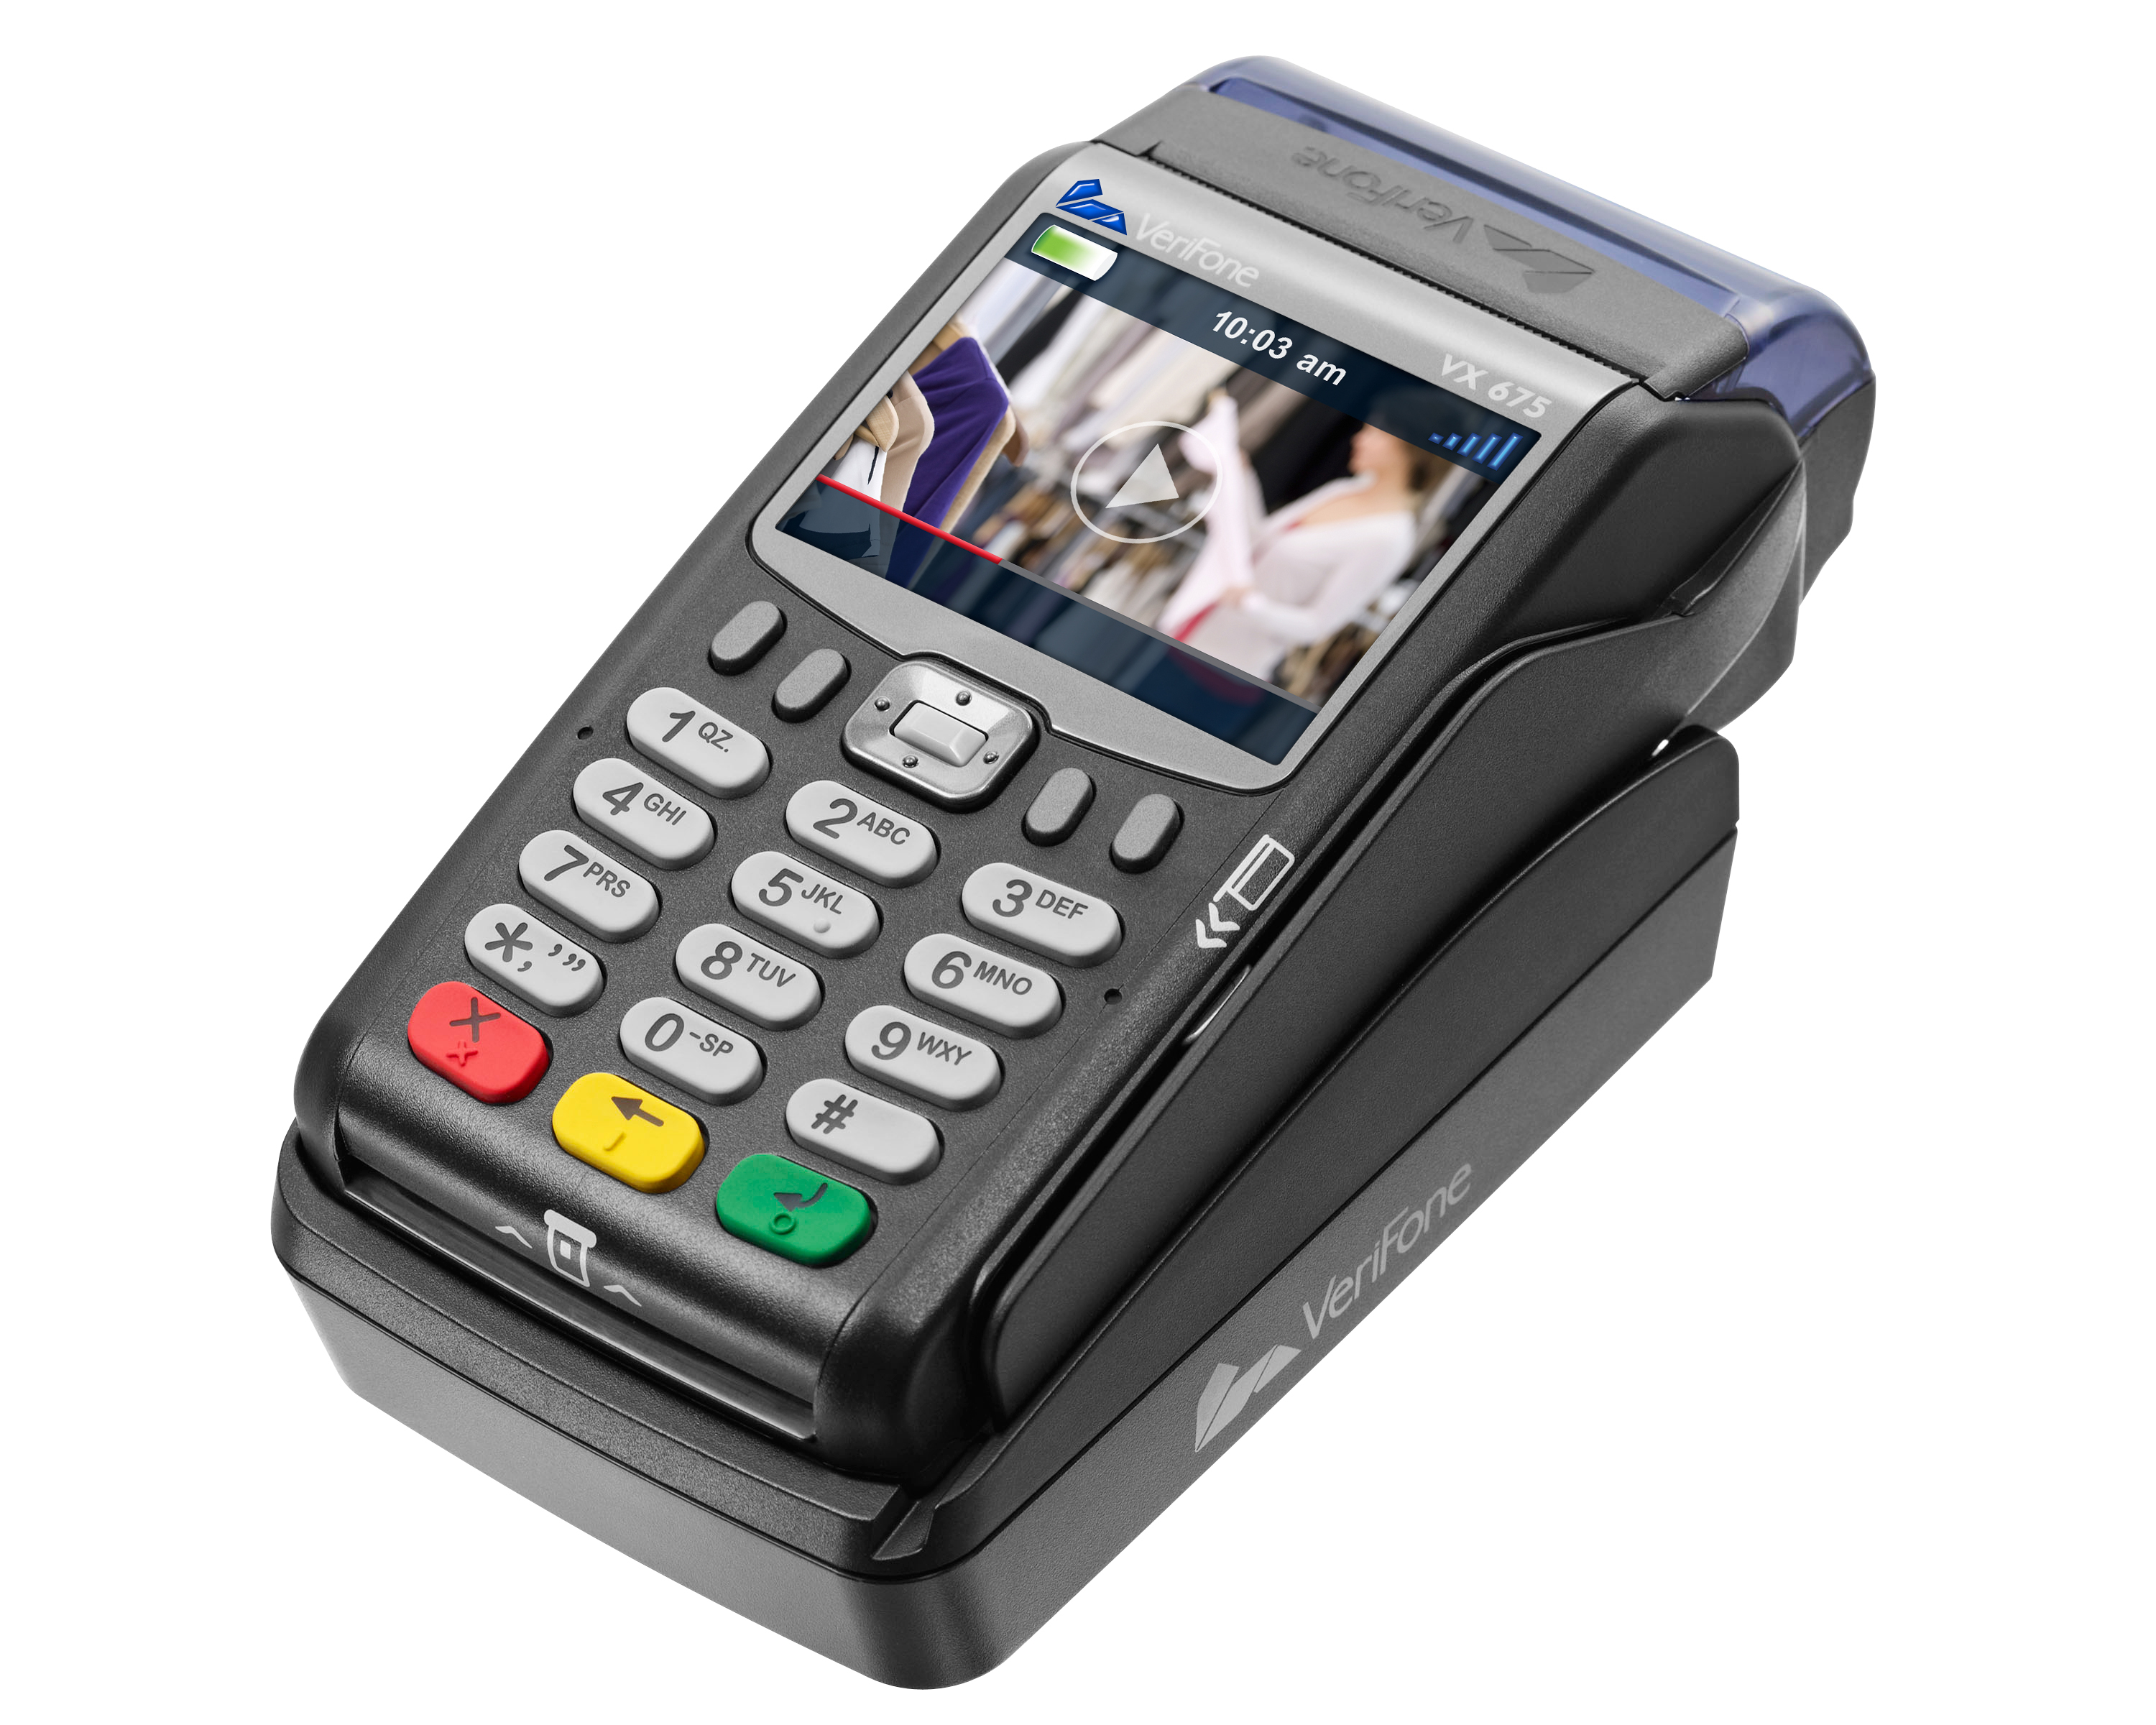 VeriFone's VX 675, which will be available to Saudi Arabia merchants through International Turnkey Systems Group (ITS), an integrated IT solutions and software services provider, is the world's smallest, full-function, wireless handheld payment device. (Photo: Business Wire)